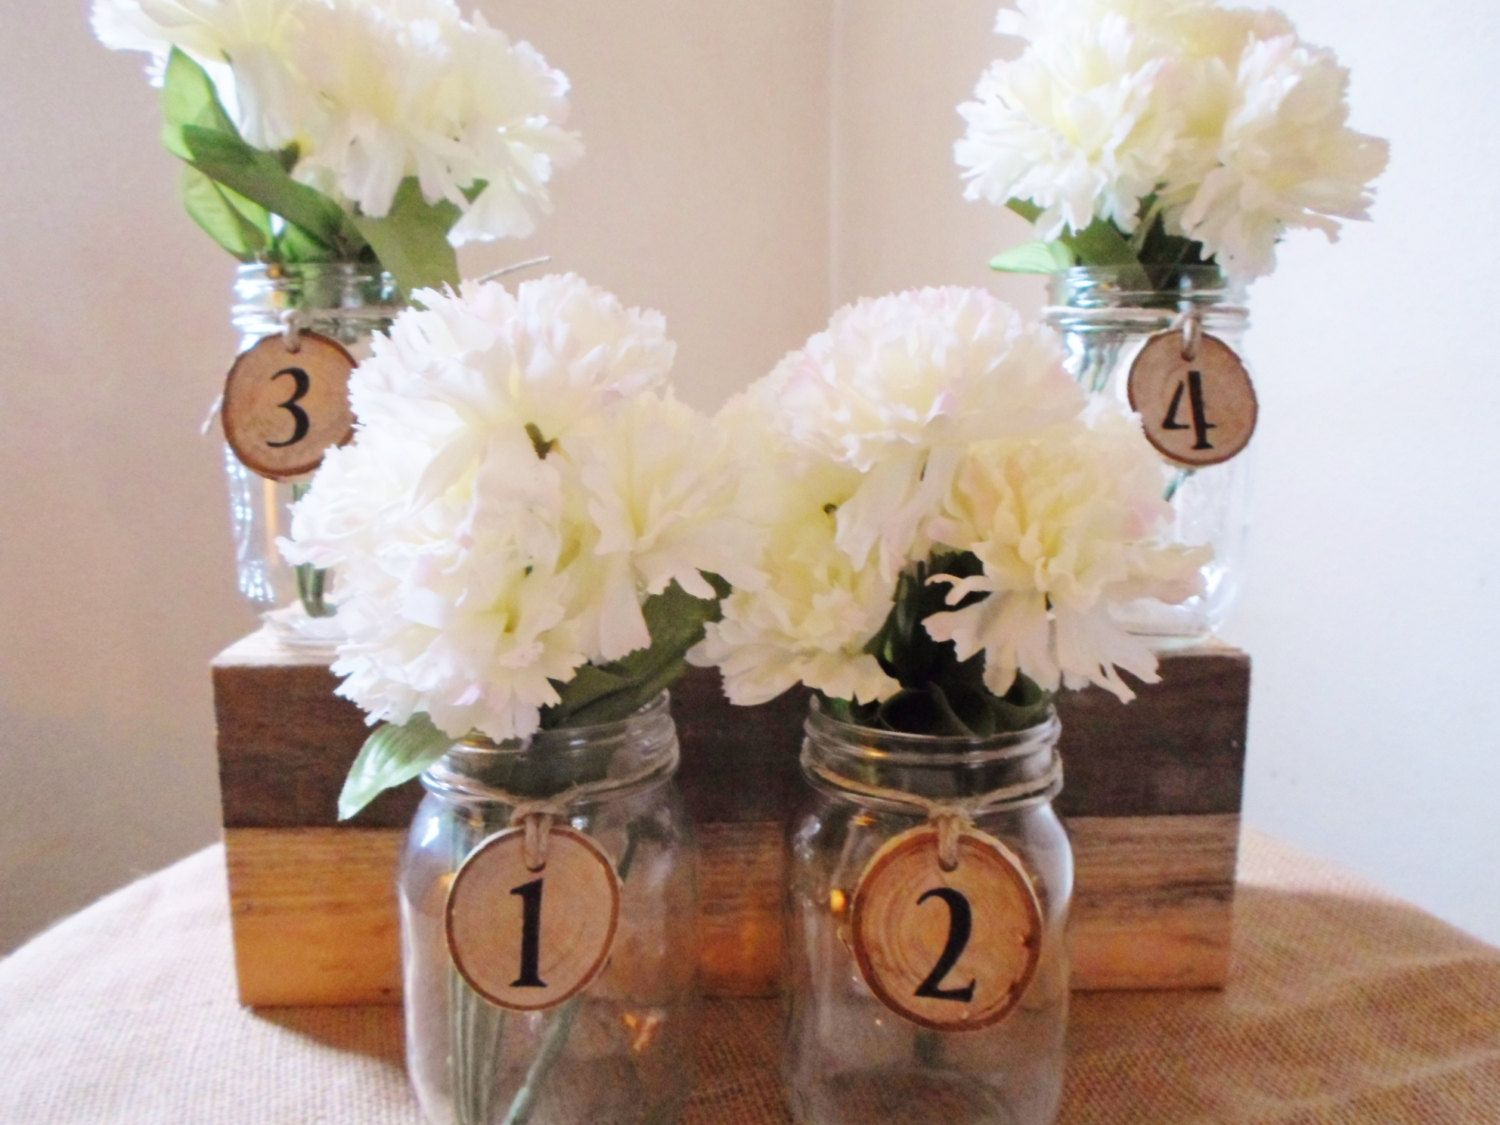 wedding table decorations rustic wedding centerpieces best images about Wedding Table Decorations on Pinterest Mercury glass Table numbers and Vases